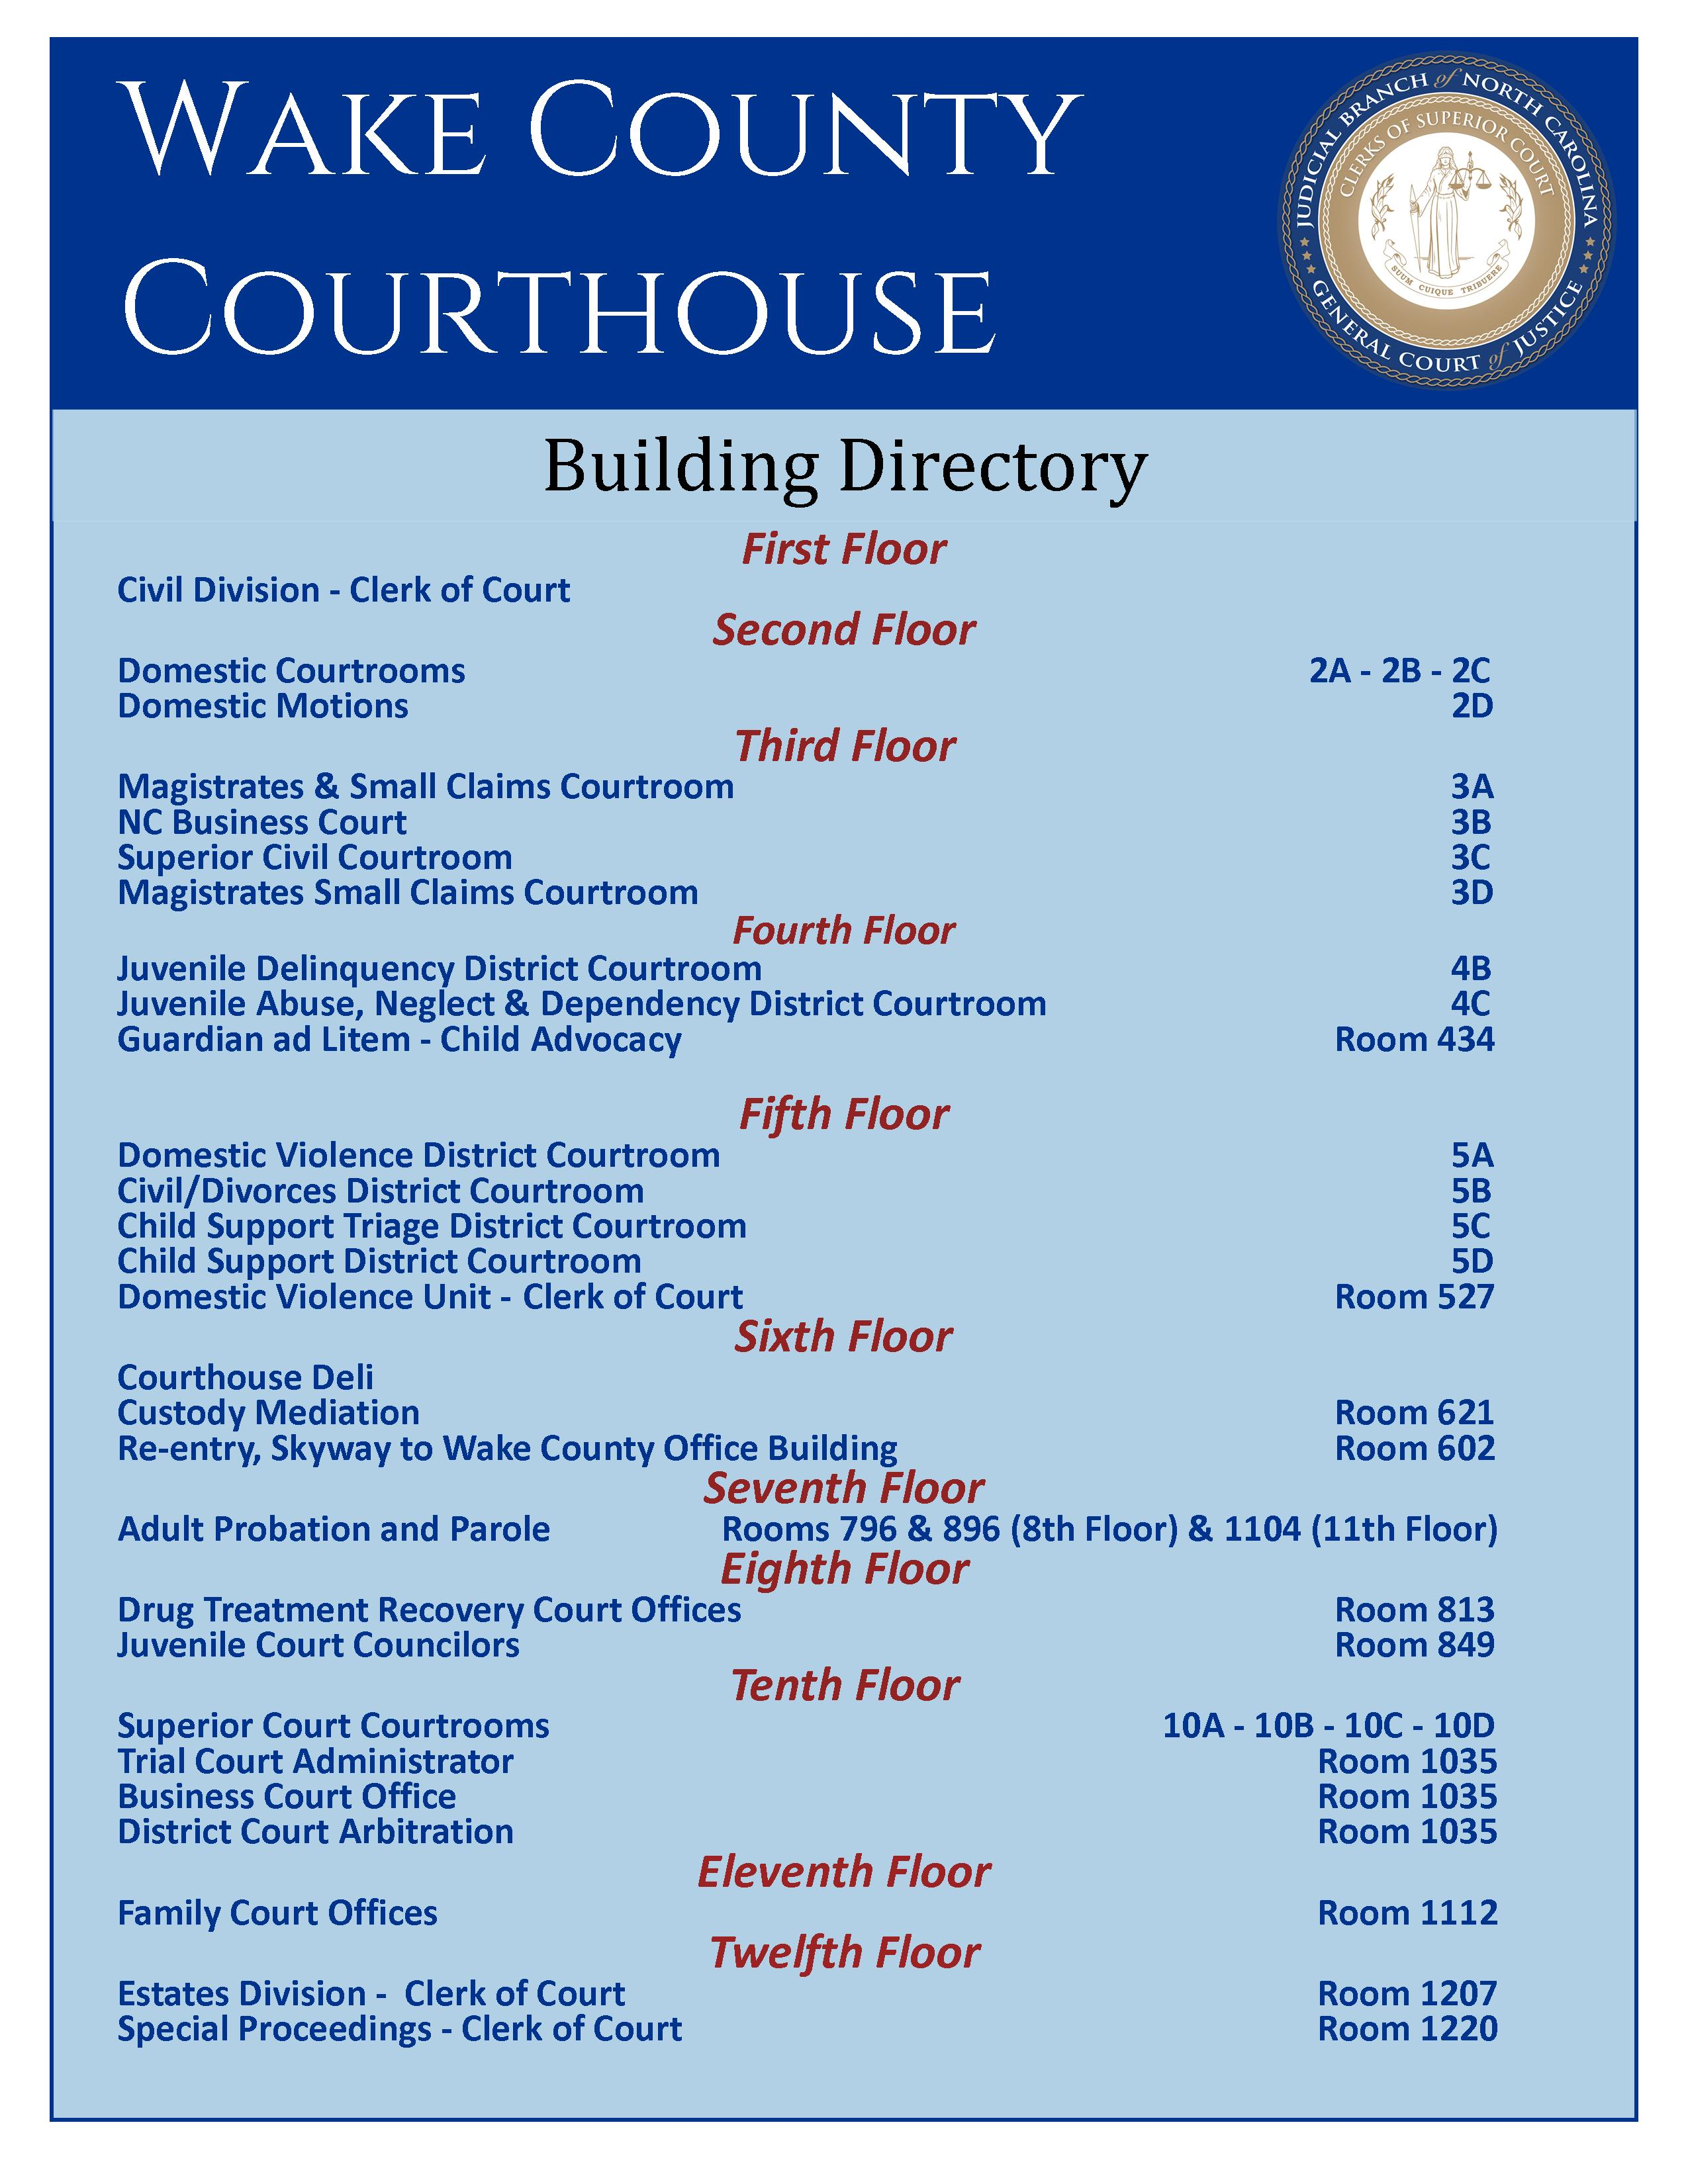 Wake County Courthouse Building Directory